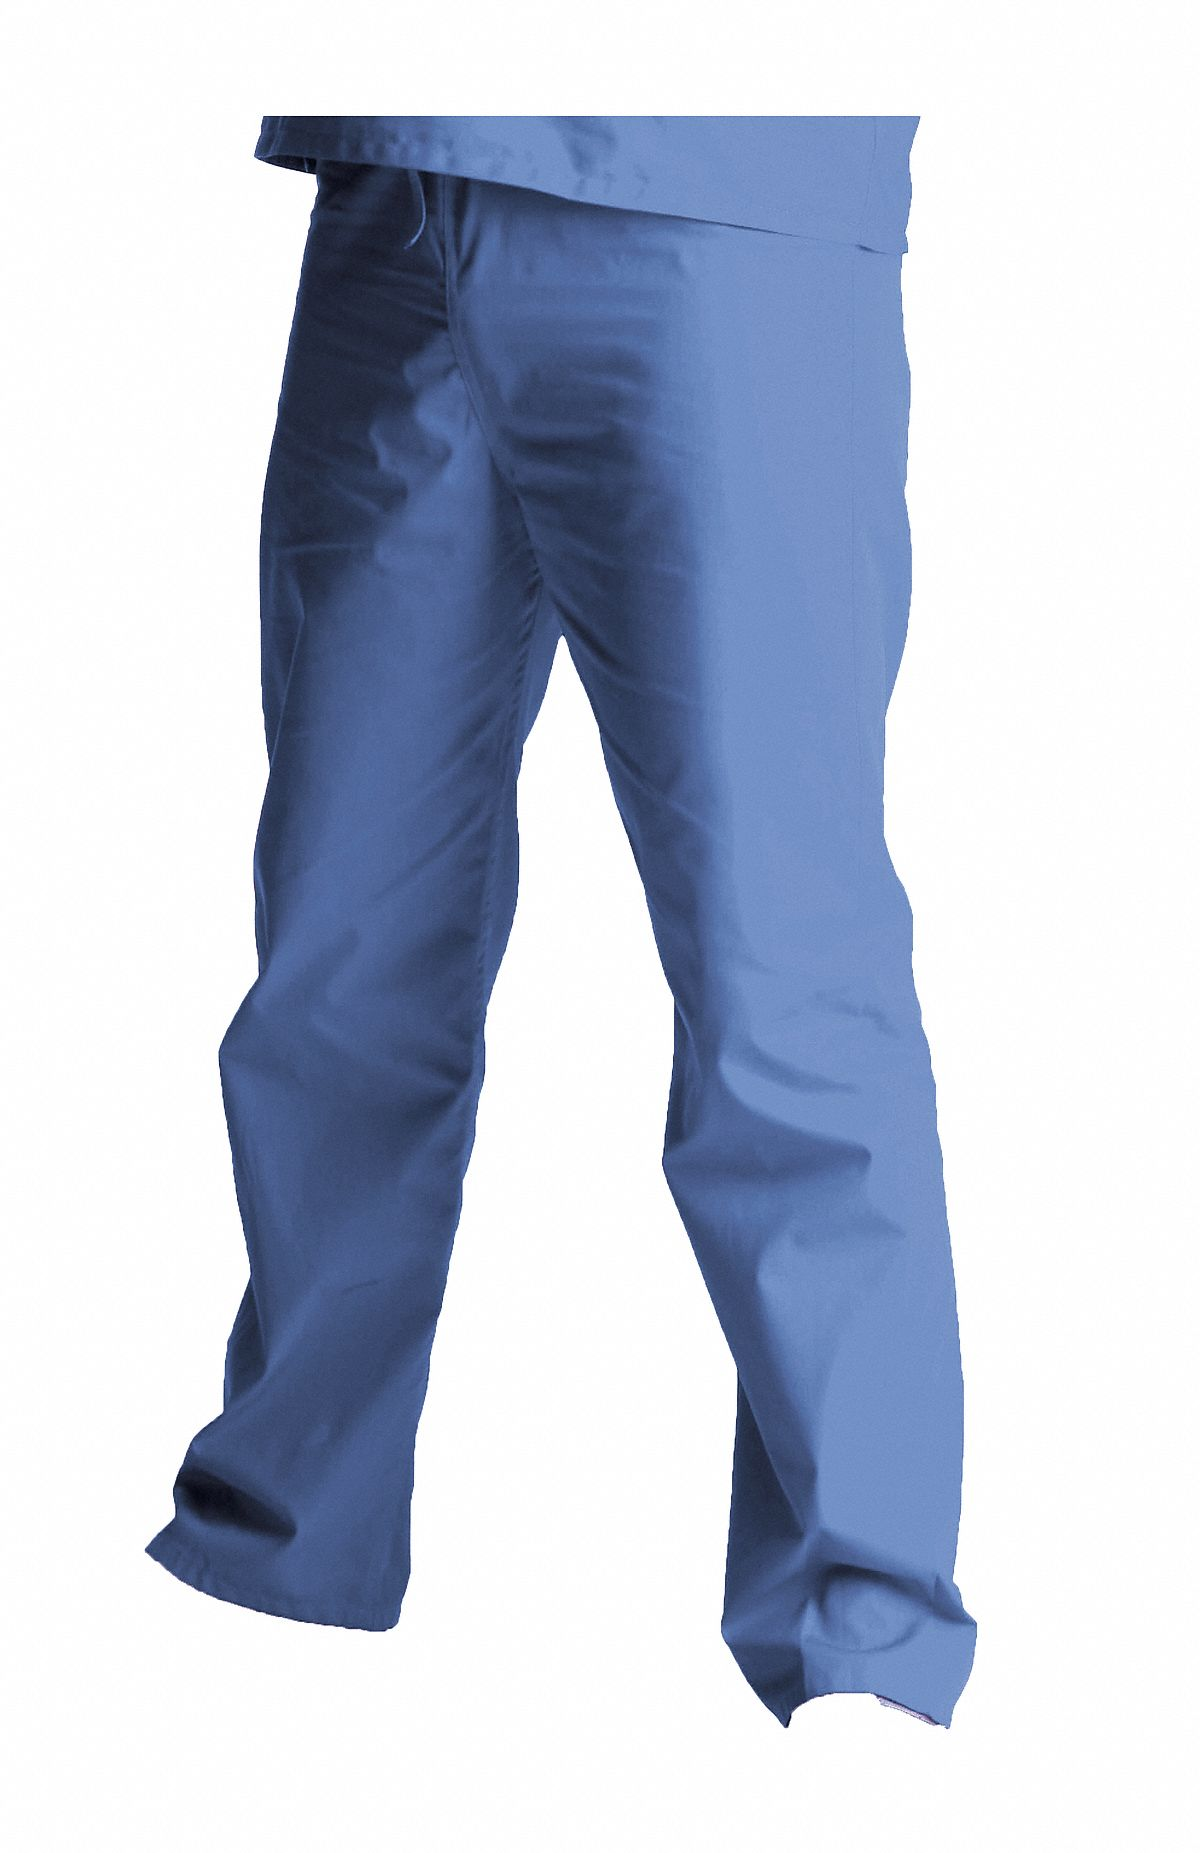 Ceil Blue Scrub Pants,  M,  Polyester/Cotton,  Fits Waist Size 32 to 34 in,  Unisex